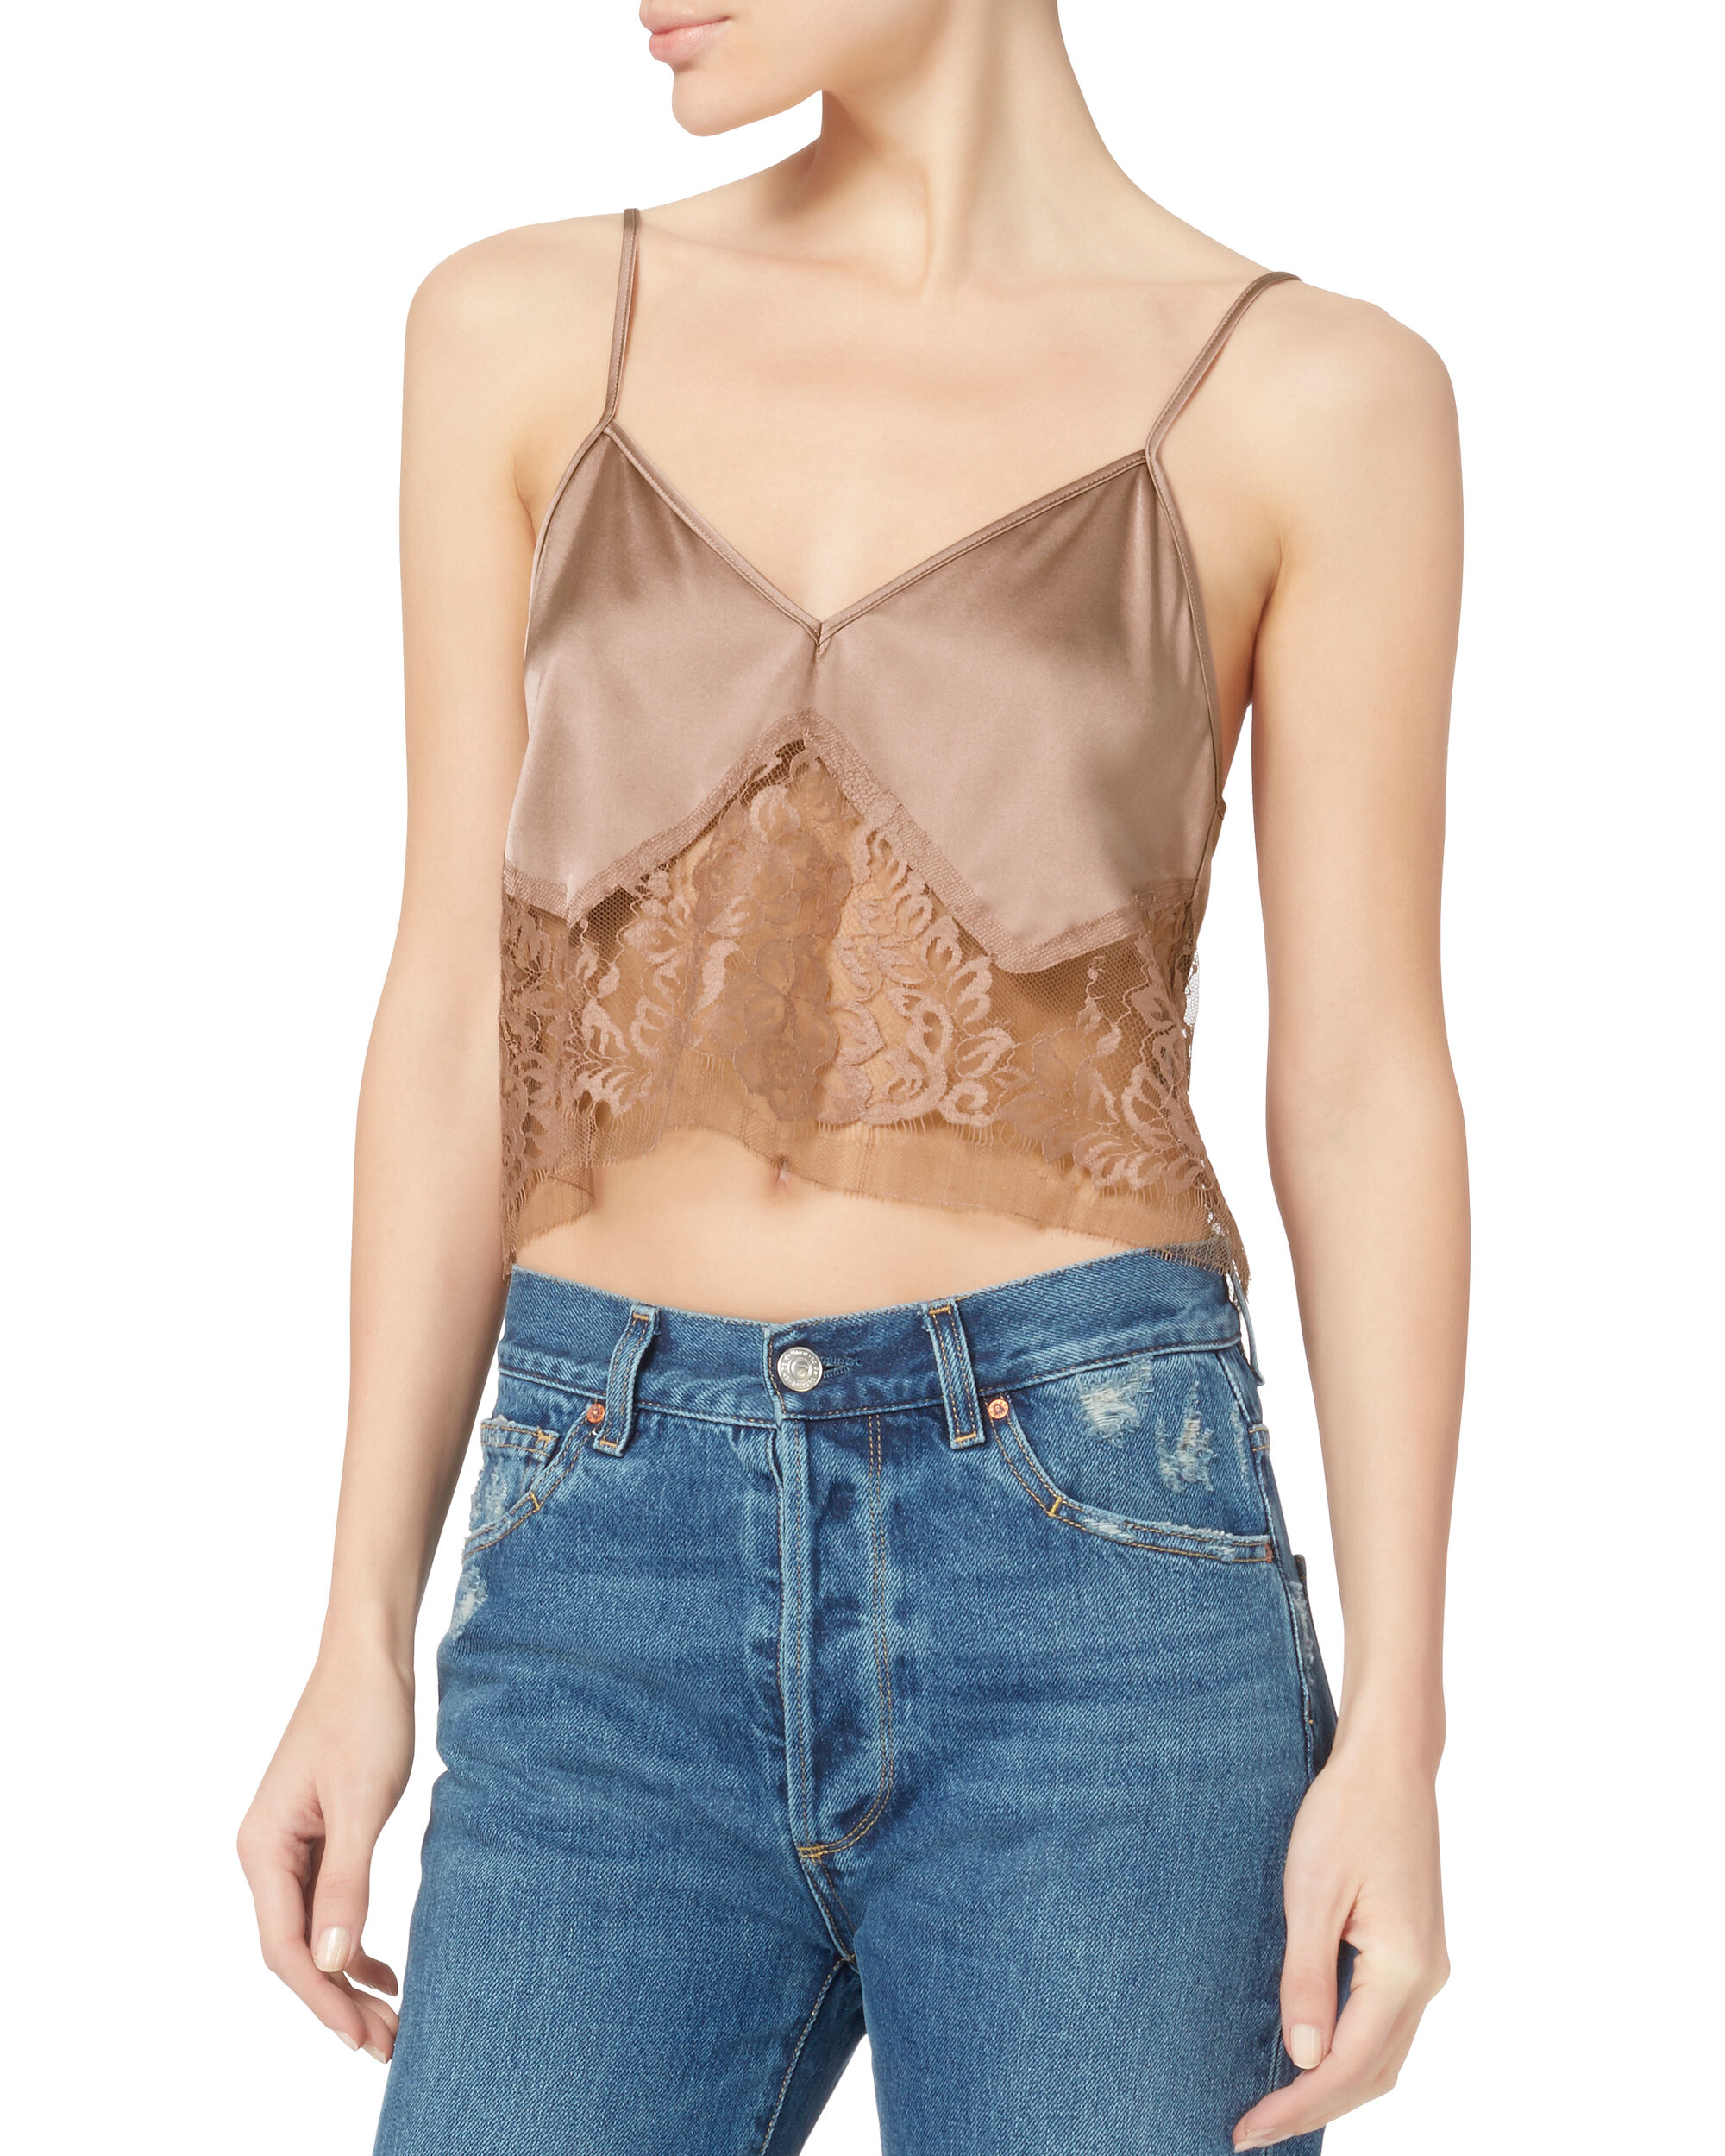 Blush Lace Camisole Layered T-Shirt, NUDE, hi-res